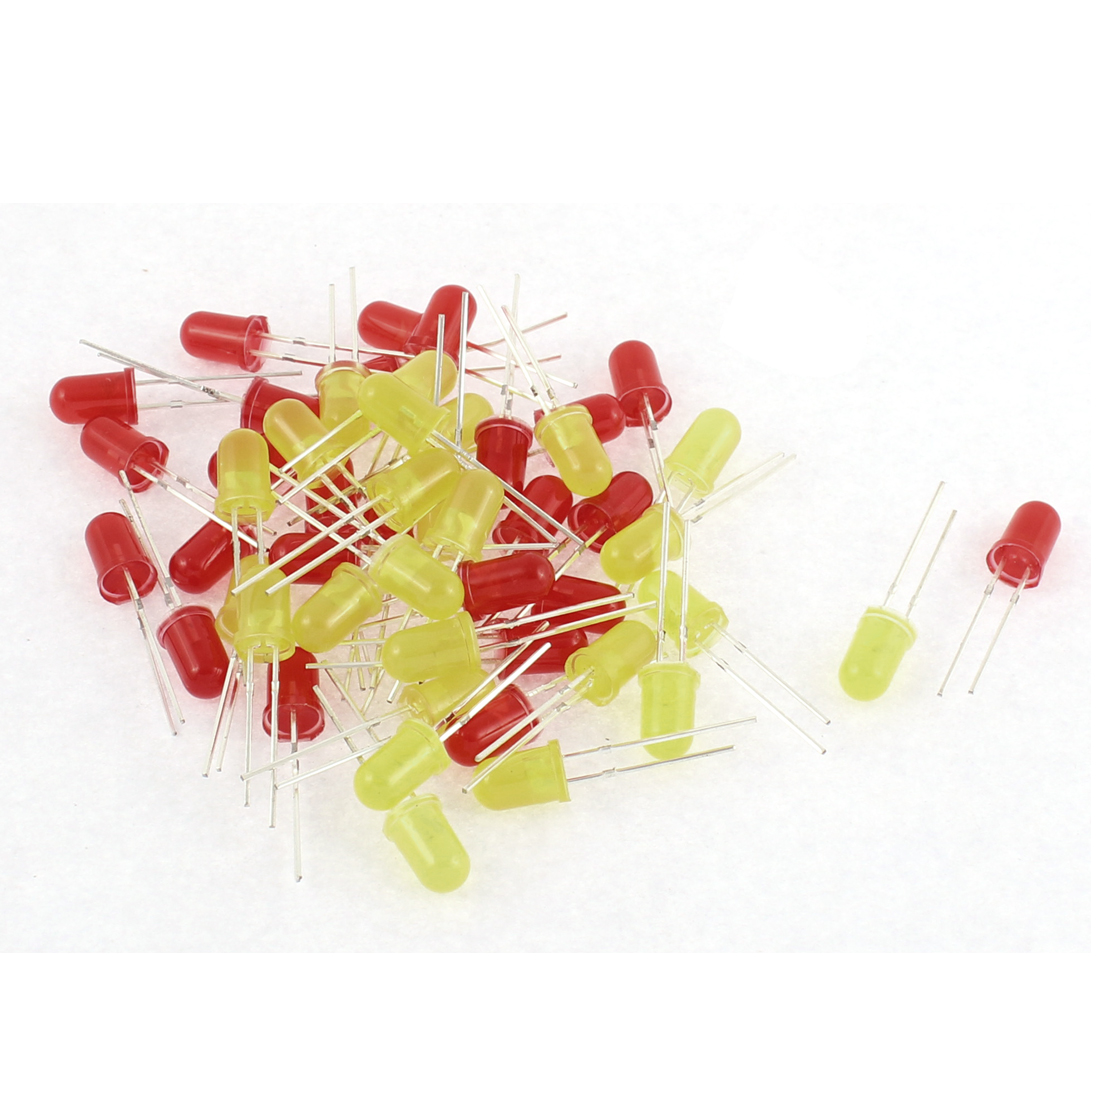 50pcs 5mm Round Red Yellow Diffused Emitting Diode LED Light Lamp Bulb